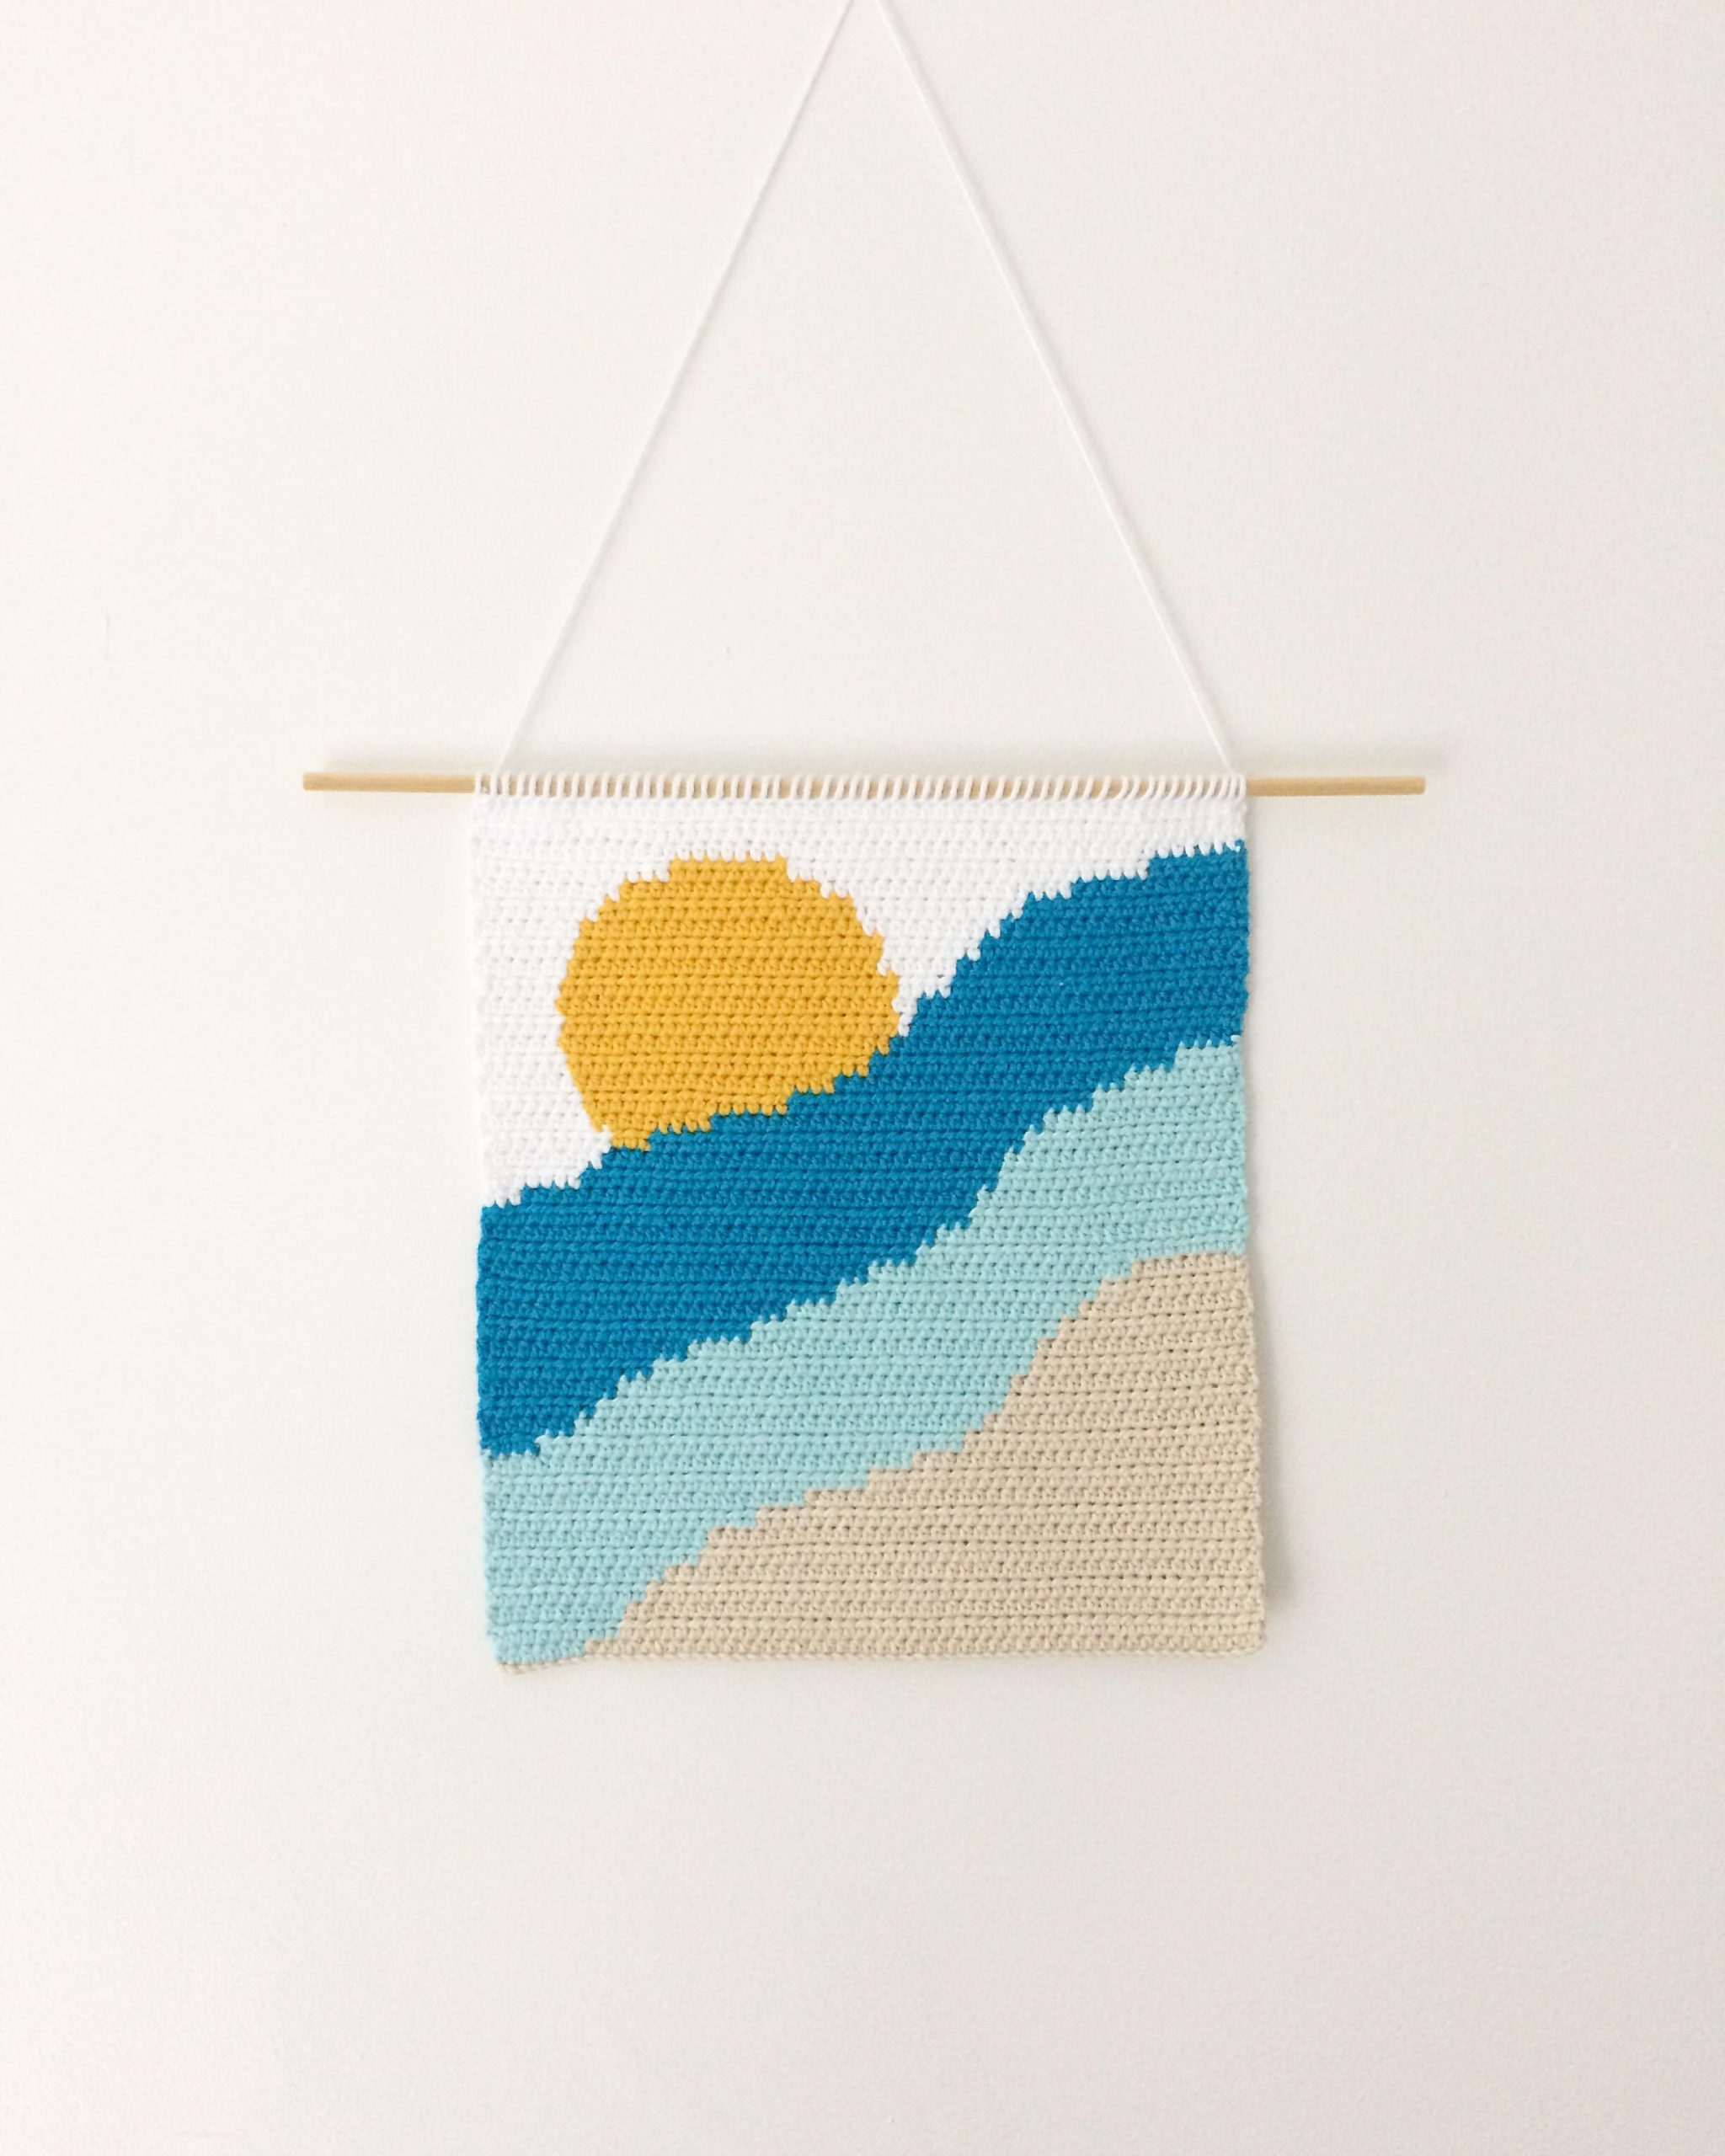 o0ac0q05mec51 scaled - Another crochet wall hanging 😊 - hobbies, crafts